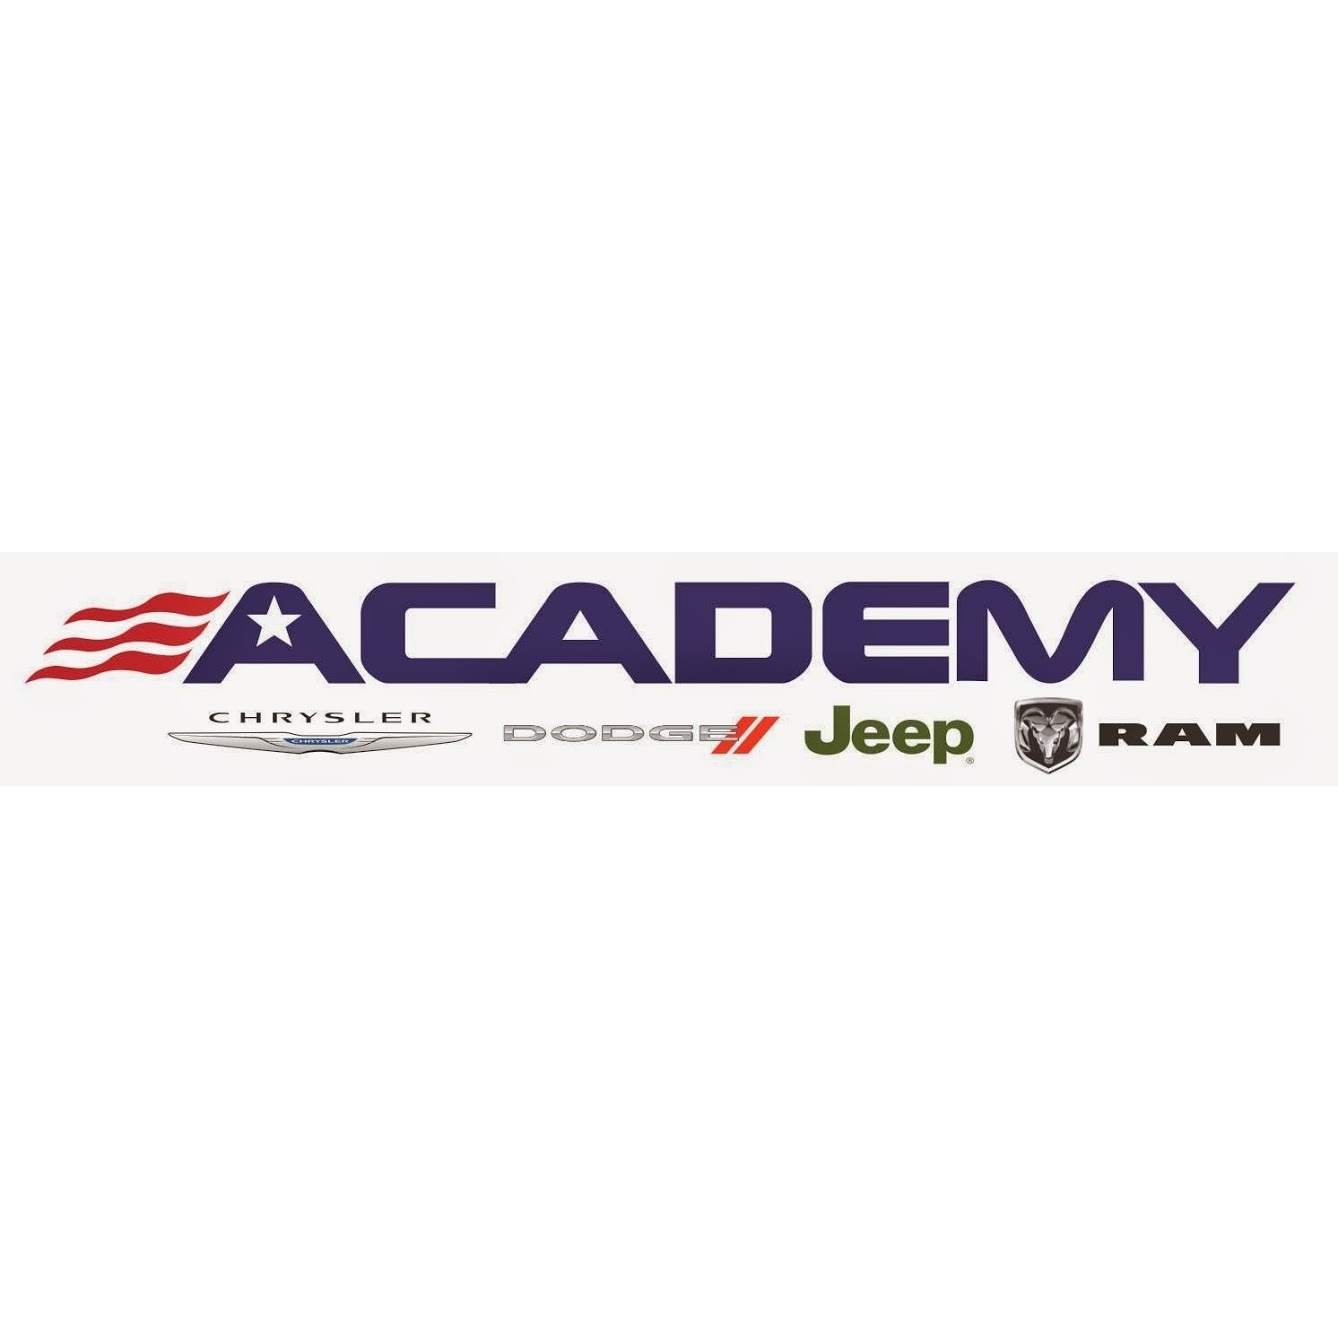 Academy Chrysler Dodge Jeep Ram